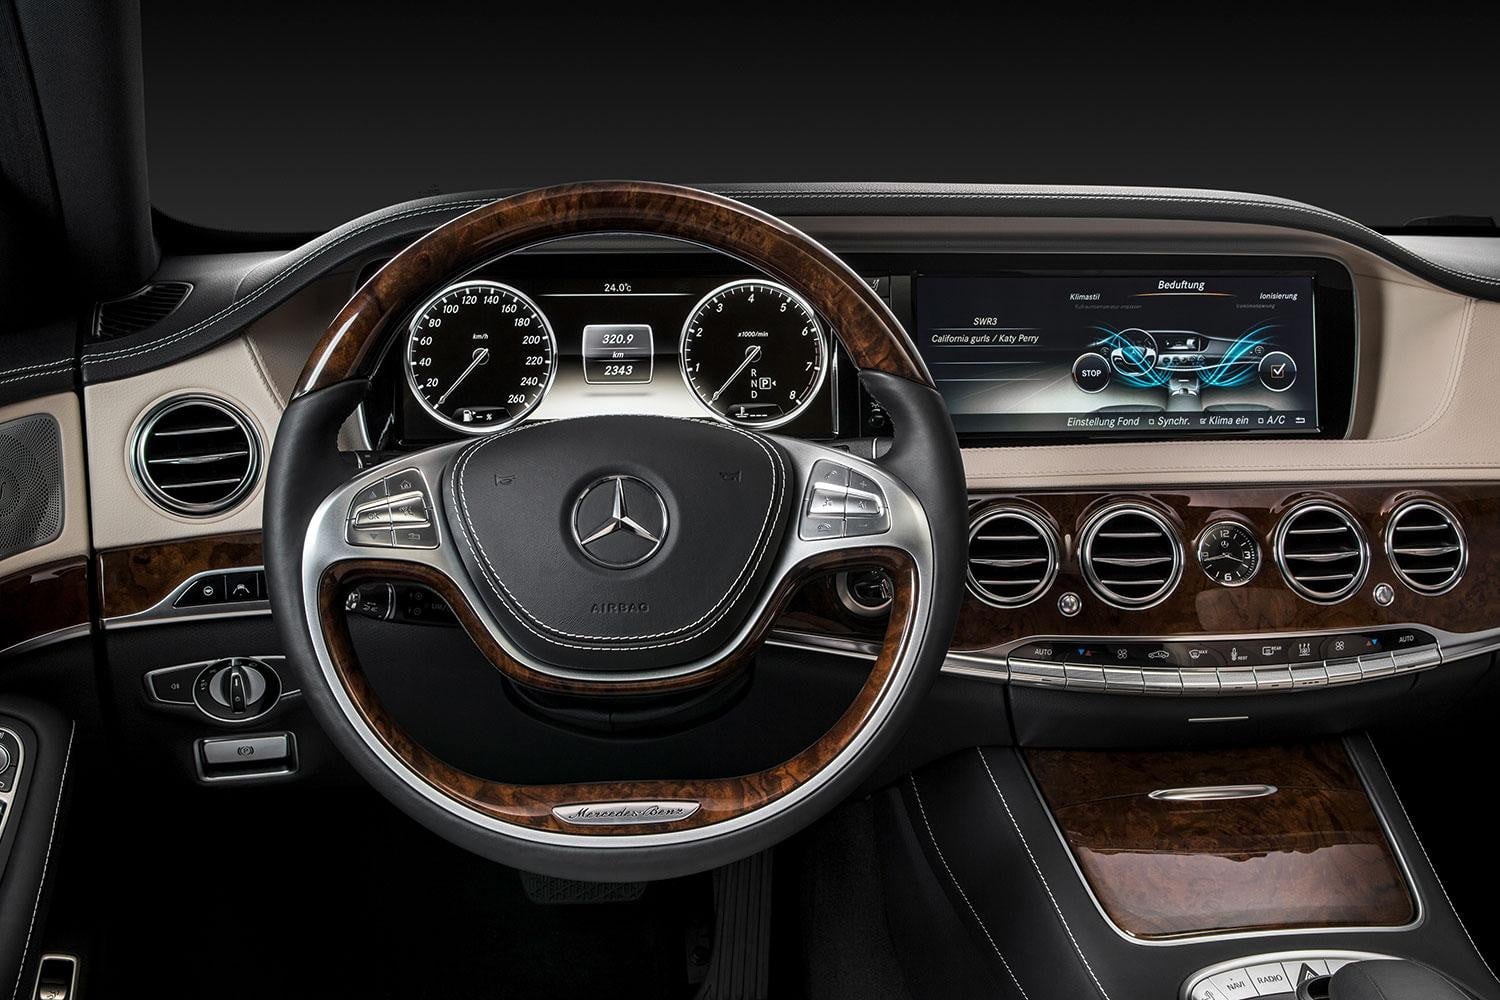 2015 Mercedes Benz S550 4matic Review Digital Trends S500 Wiring Diagram Front Interior